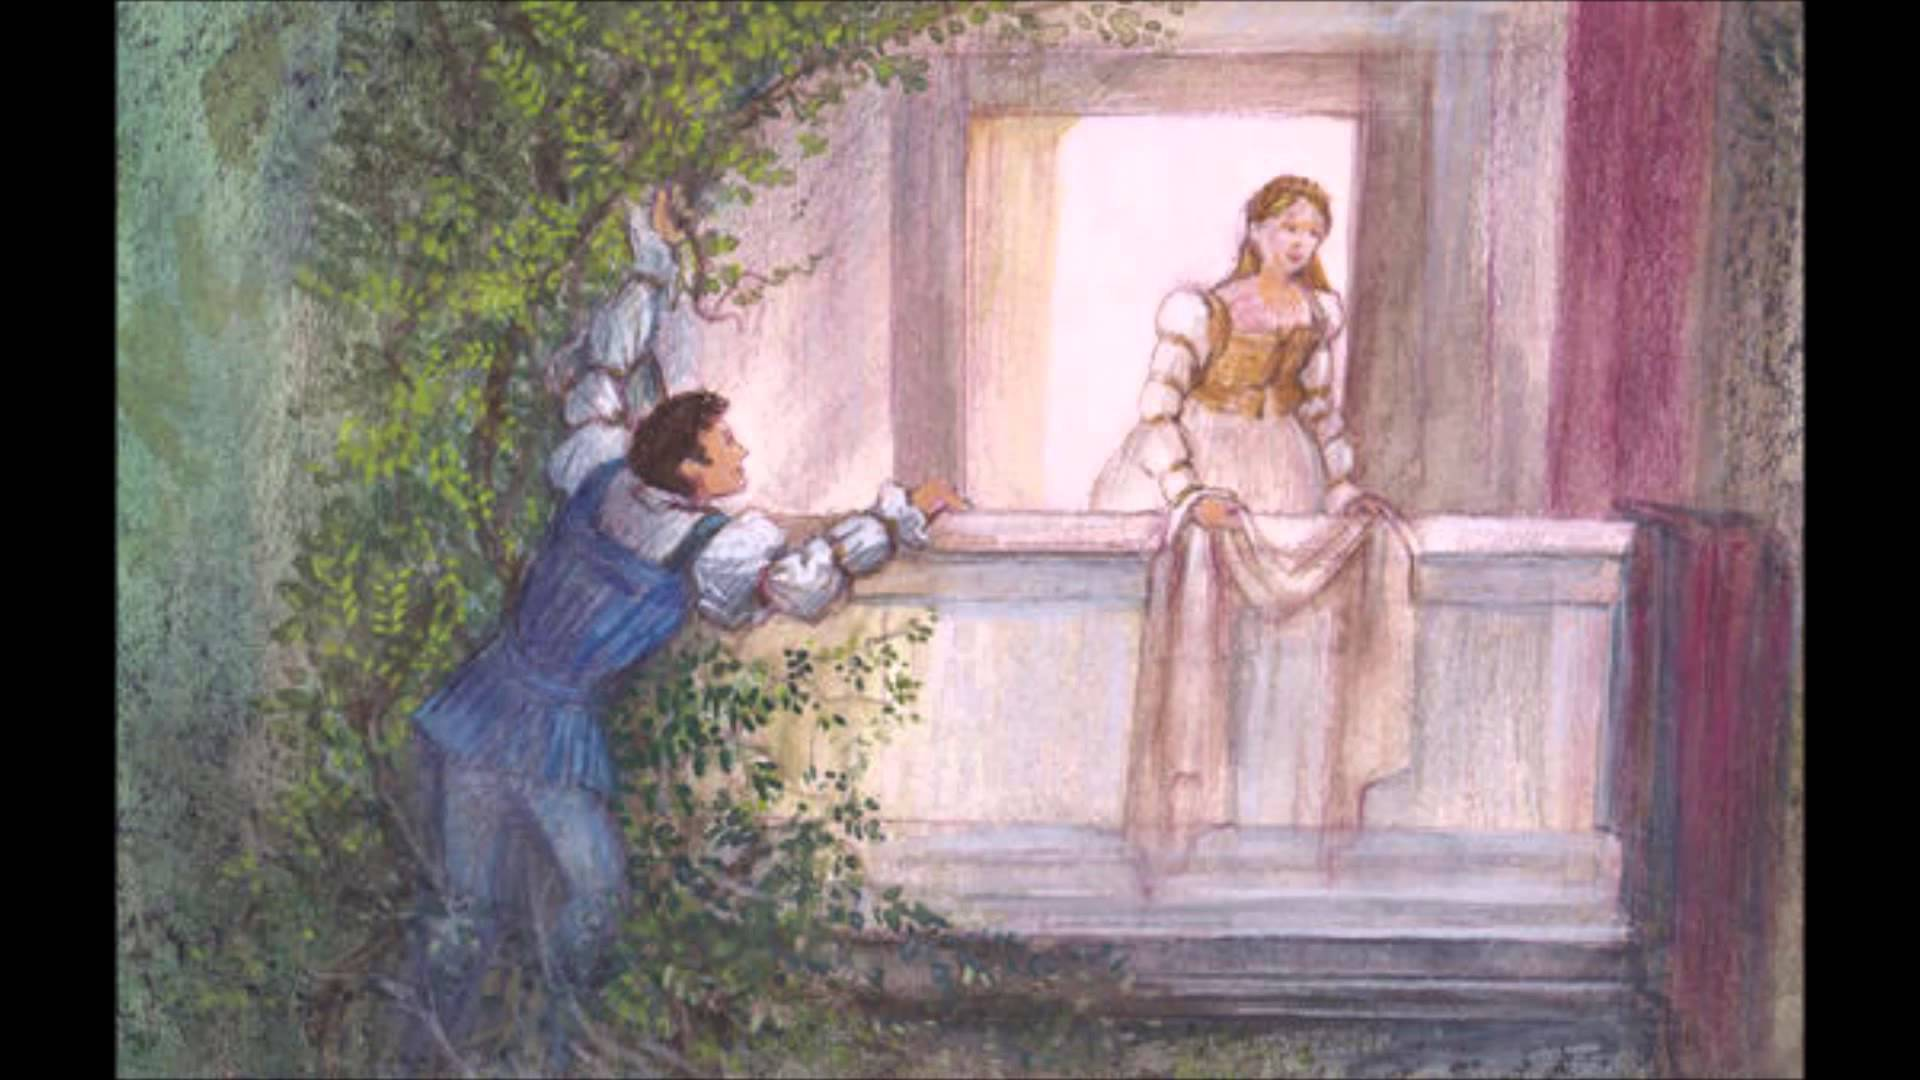 Romeo and juliet balcony scene painting.